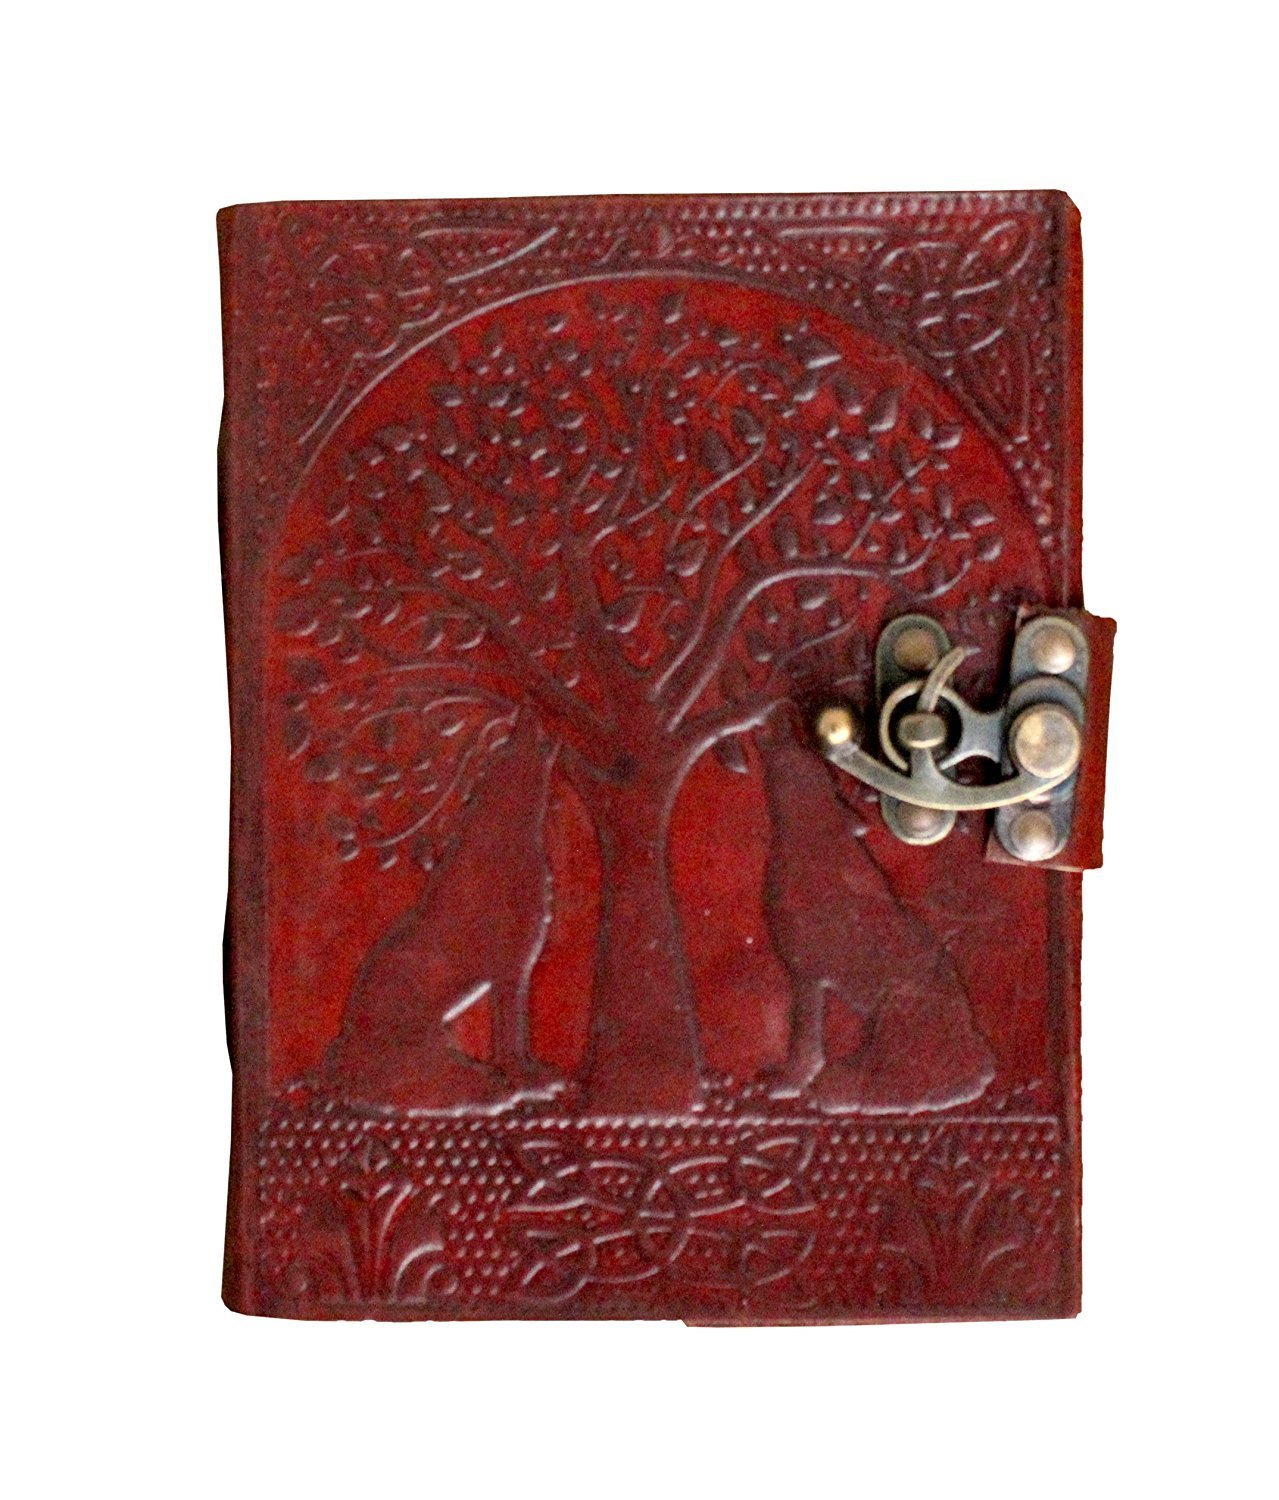 BHAVYA Leather & Handmade Paper Diary Notebook Journal For Personal Use or Gift Size 5x7